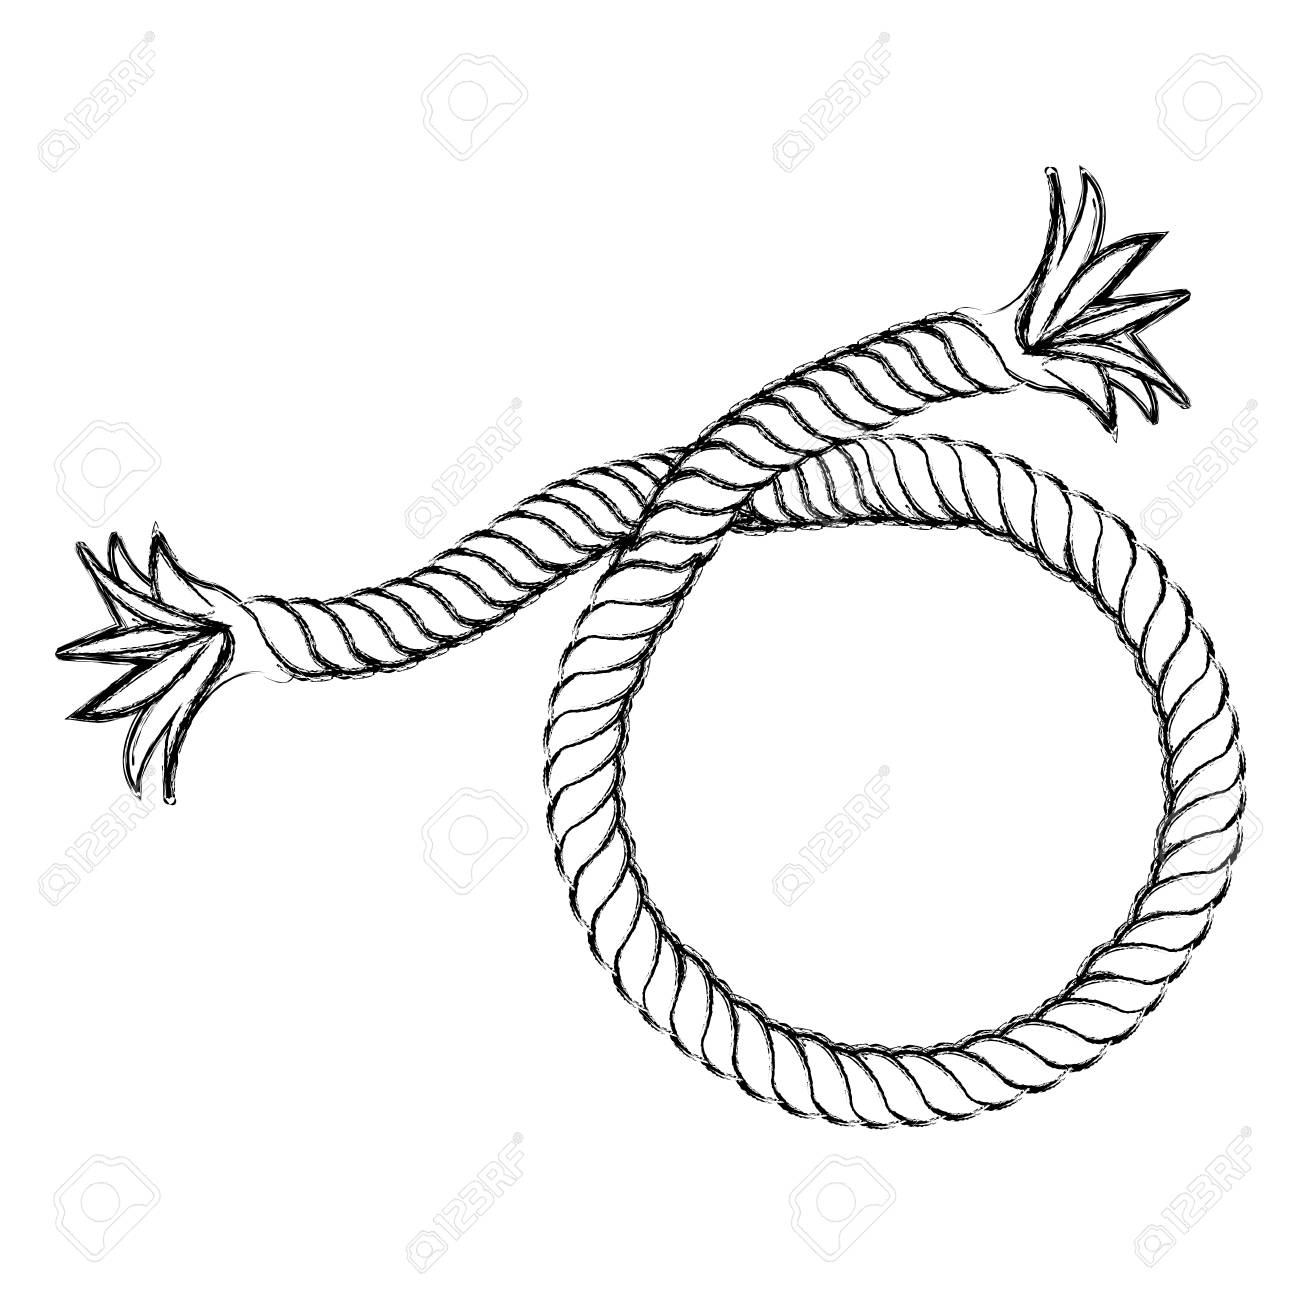 1300x1300 Monochrome Contour Hand Drawing Of Nautical Break Rope Vector